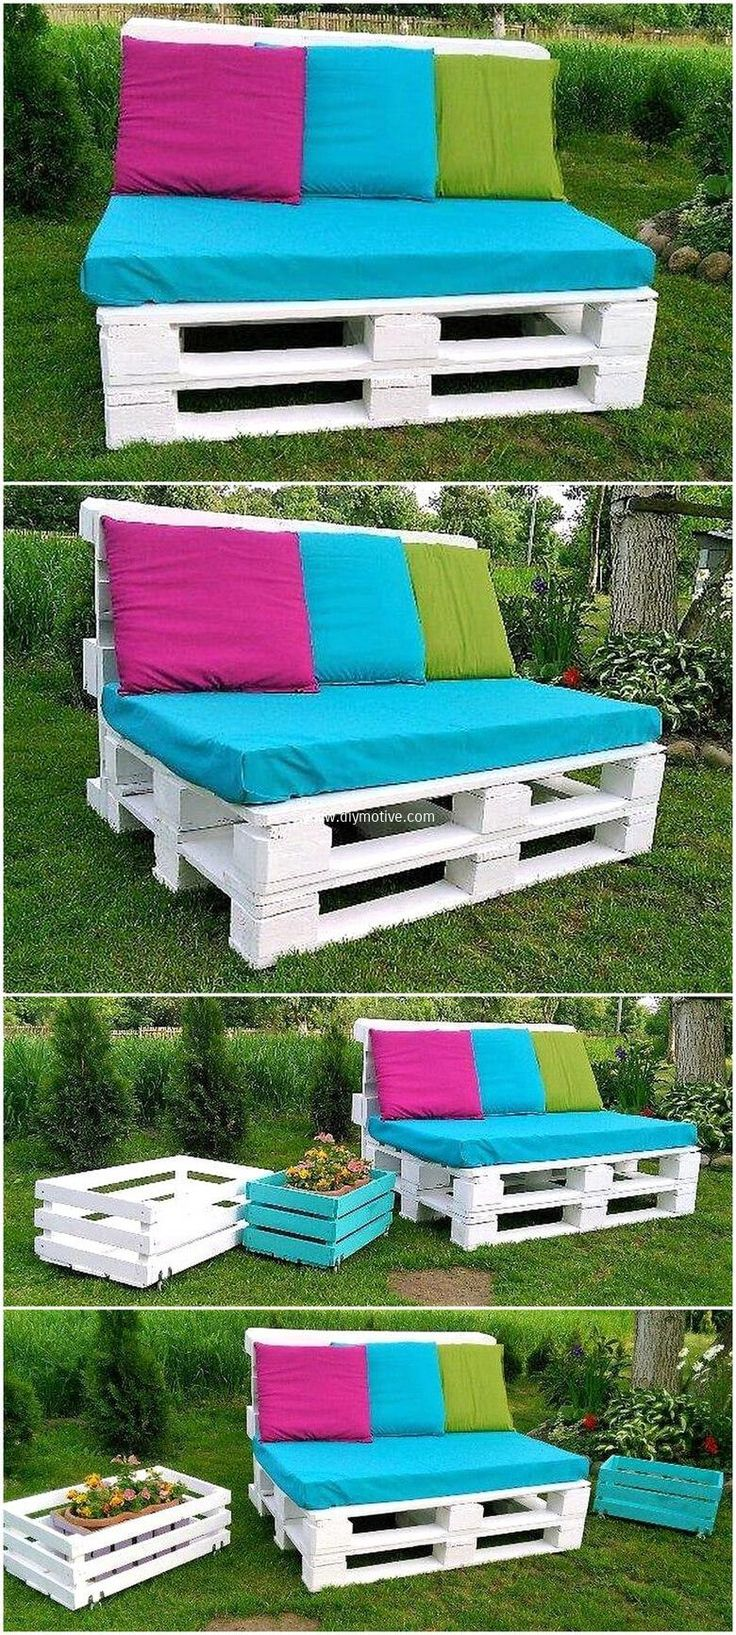 This is an interesting activity you need to try for your place. It is very easy to craft pallet garden sofa. All you need is to cut pallet in proper manner then join them one by one making its base and at last put seats of fresh colors to enhance its beauty. #pallets #woodpallet #palletfurniture #palletproject #palletideas #recycle #recycledpallet #reclaimed #repurposed #reused #restore #upcycle #diy #palletart #pallet #recycling #upcycling #refurnish #recycled #woodwork #woodworking